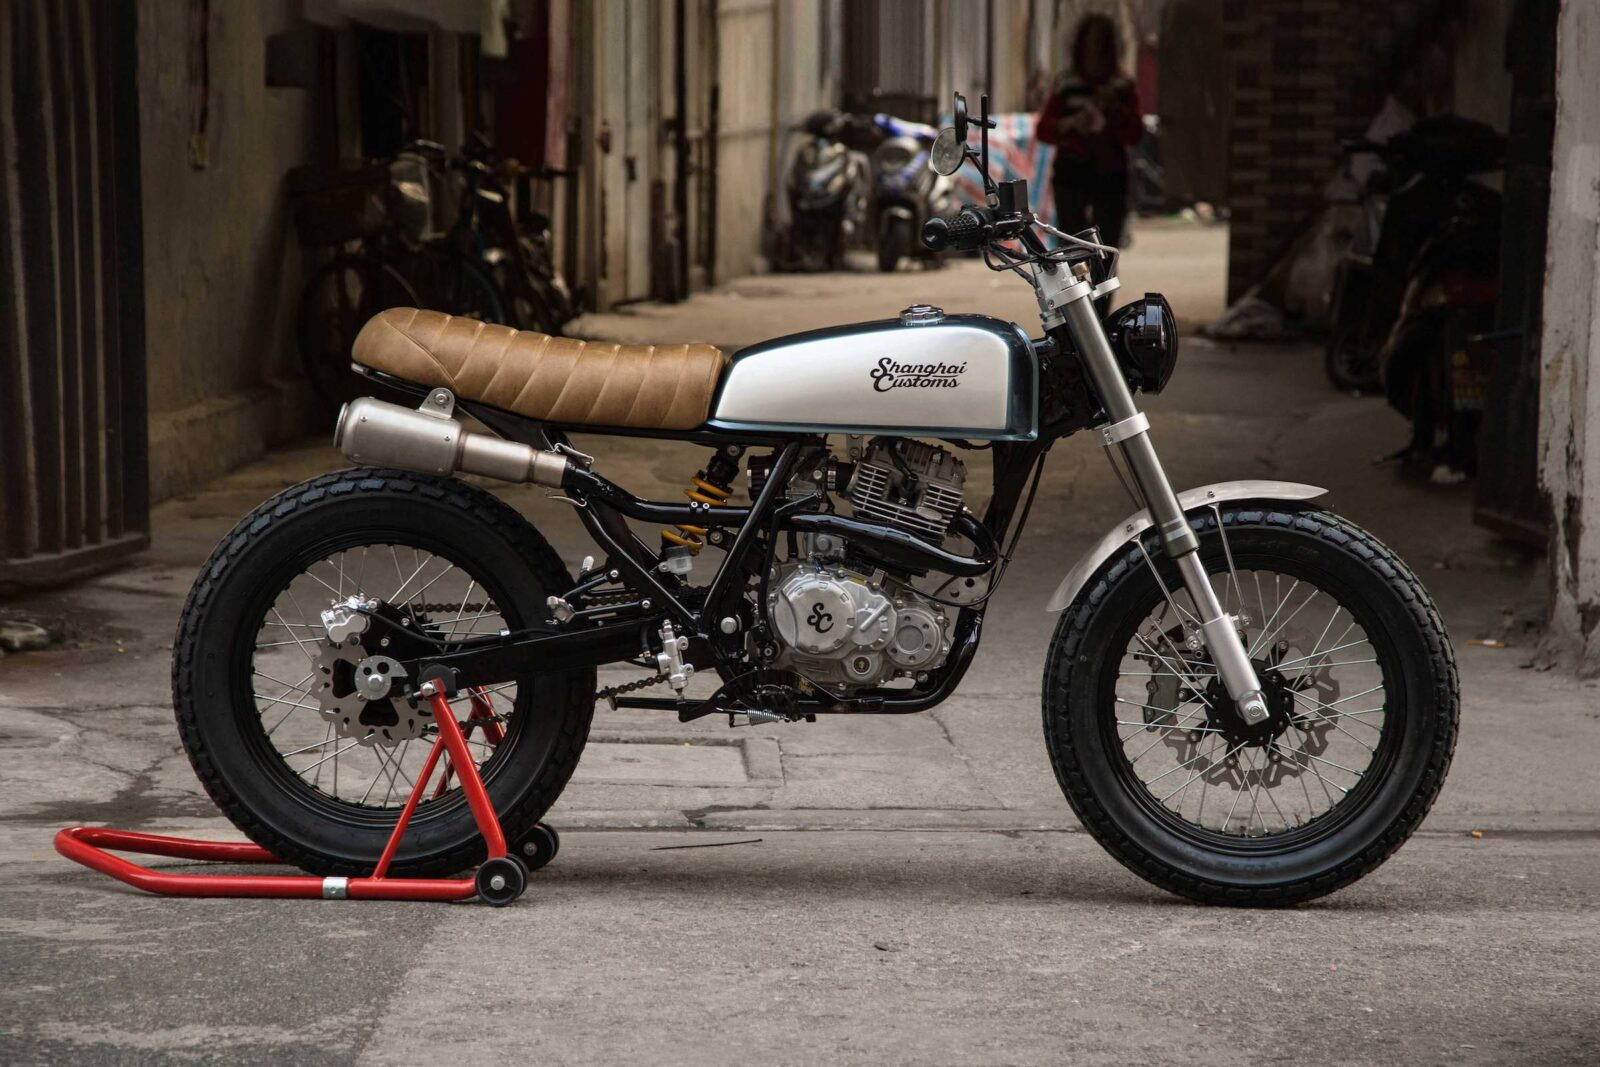 Shanghai Customs Scrambler Motorcycle 1600x1067 - Shanghai Customs Scrambler